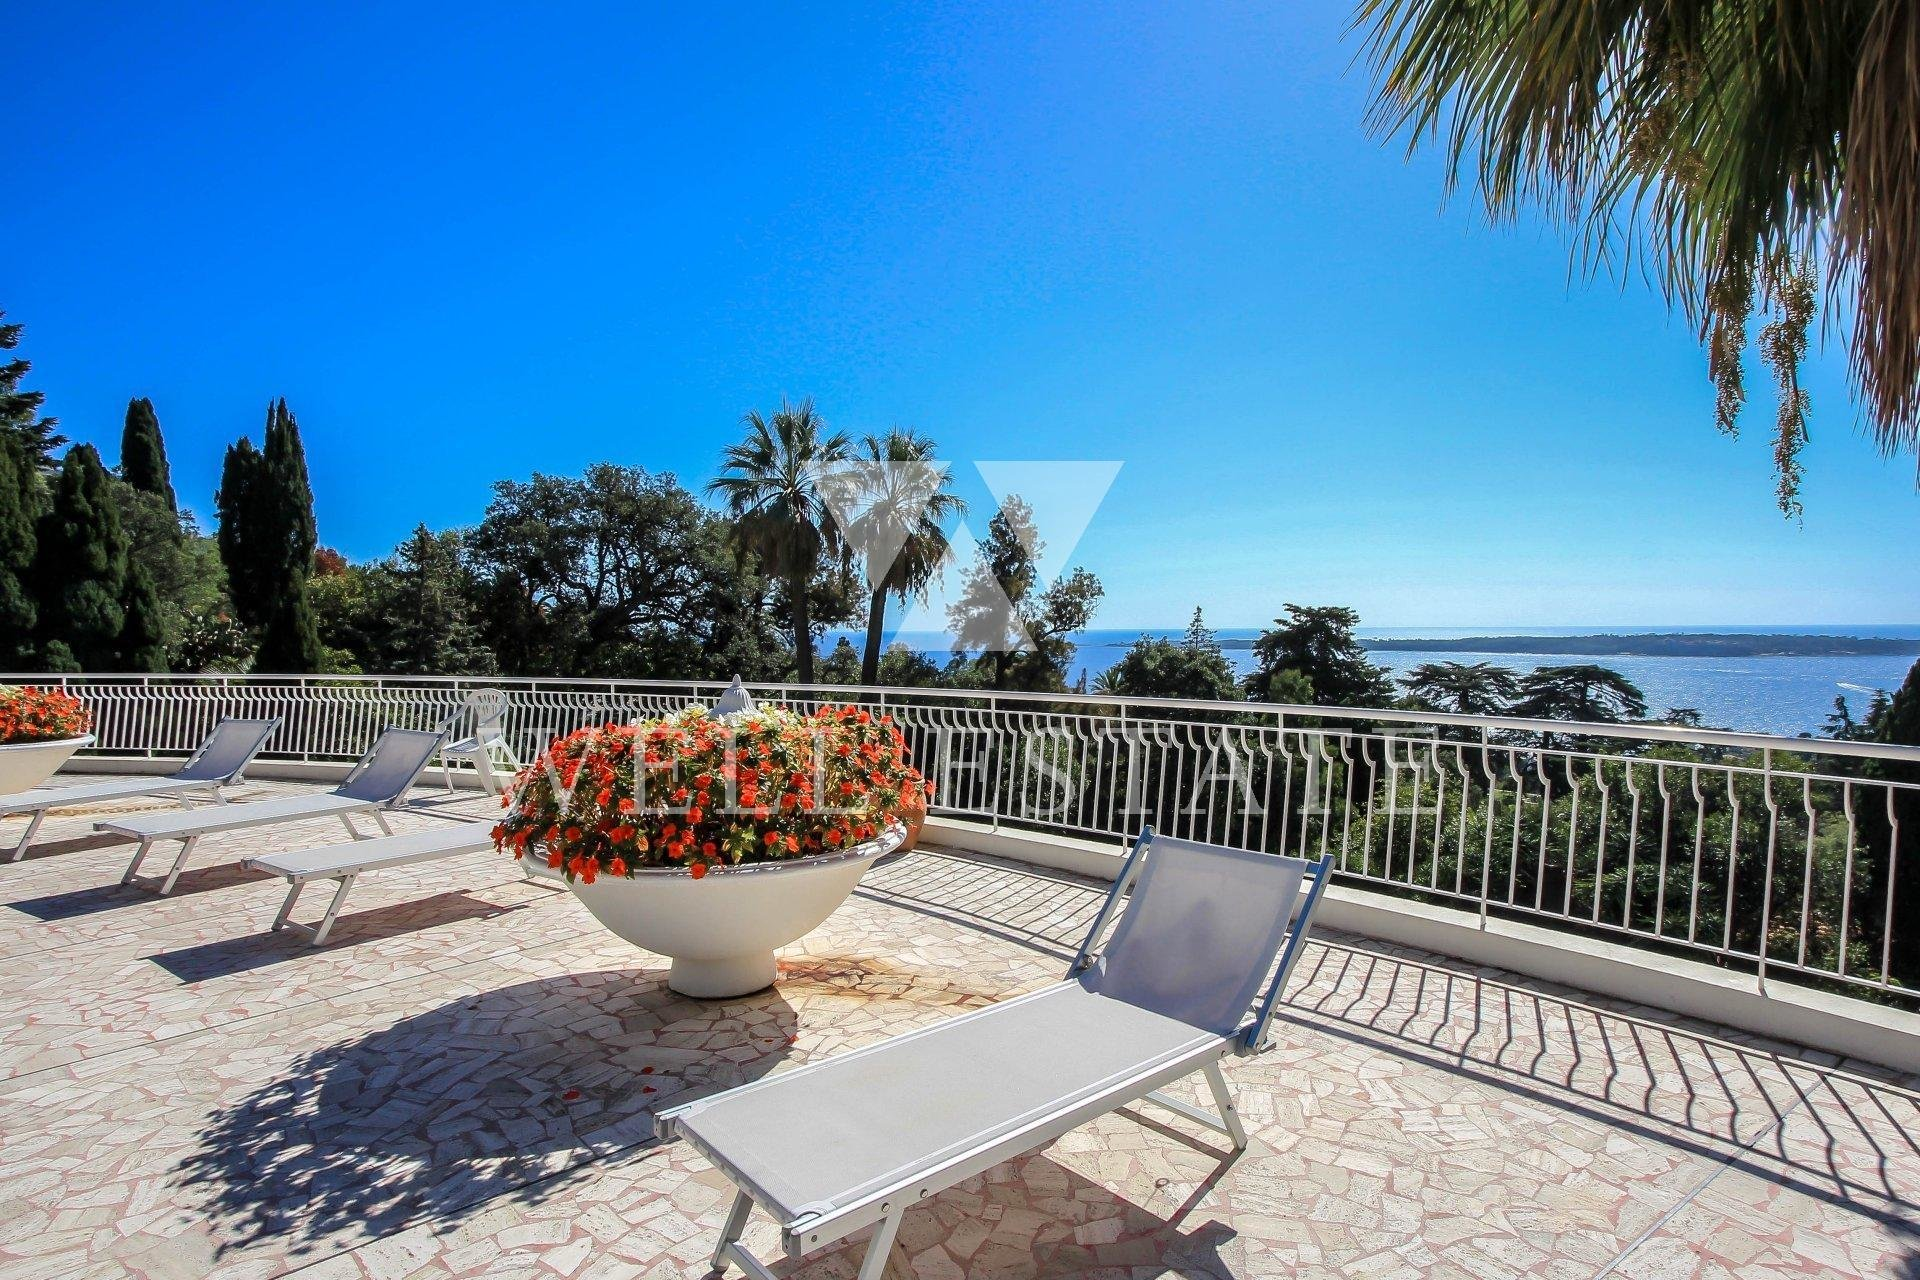 SEASONAL RENT CANNES CALIFORNIE 3/4 BEDROOM APARTMENT 170M2 SEA VIEW .